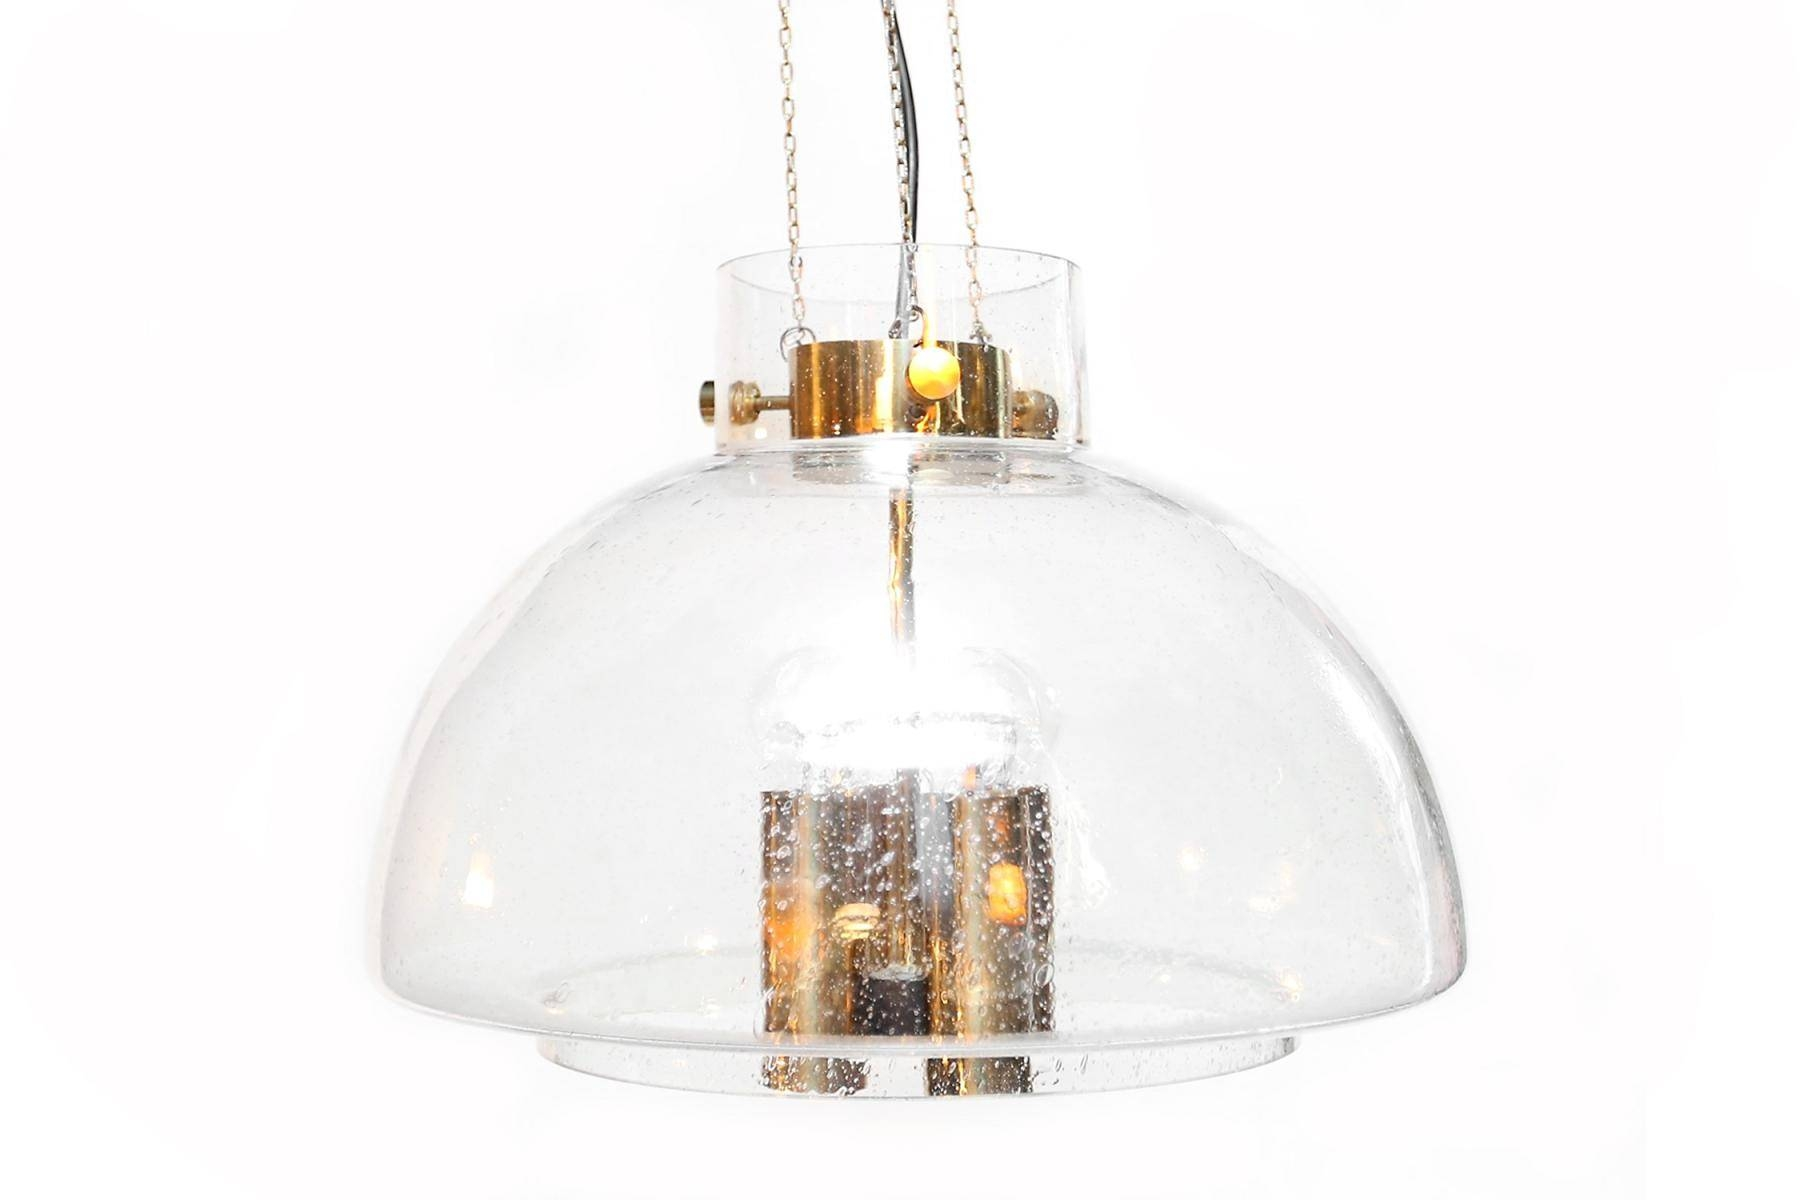 Brass & Hand-Blown Glass Pendant From Glashutte Limburg For Sale in Hand Blown Glass Pendants (Image 4 of 15)